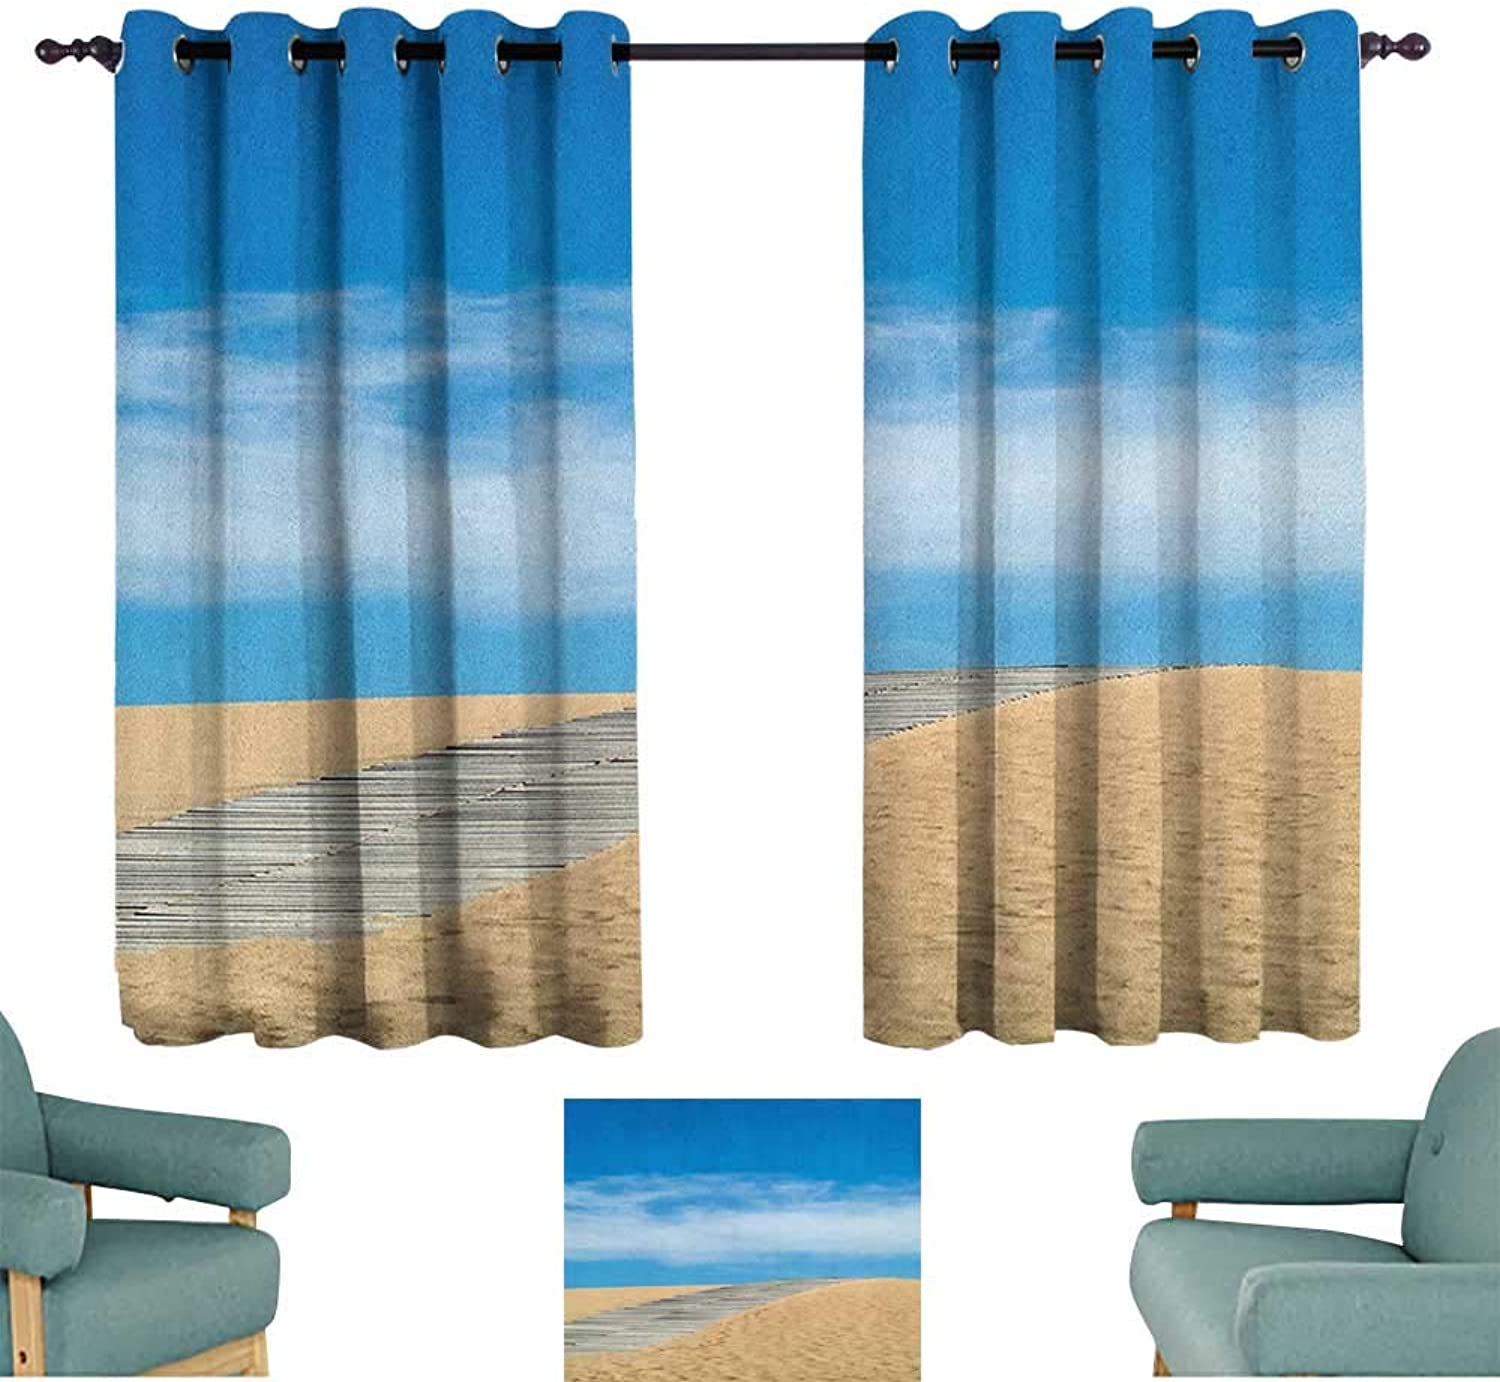 Beach,Kitchen Curtains Wooden Path Over a Sand Dune Secret Paradise Beach for Recreation and Clam Photo 42 X54  Picture Print Decor Curtains